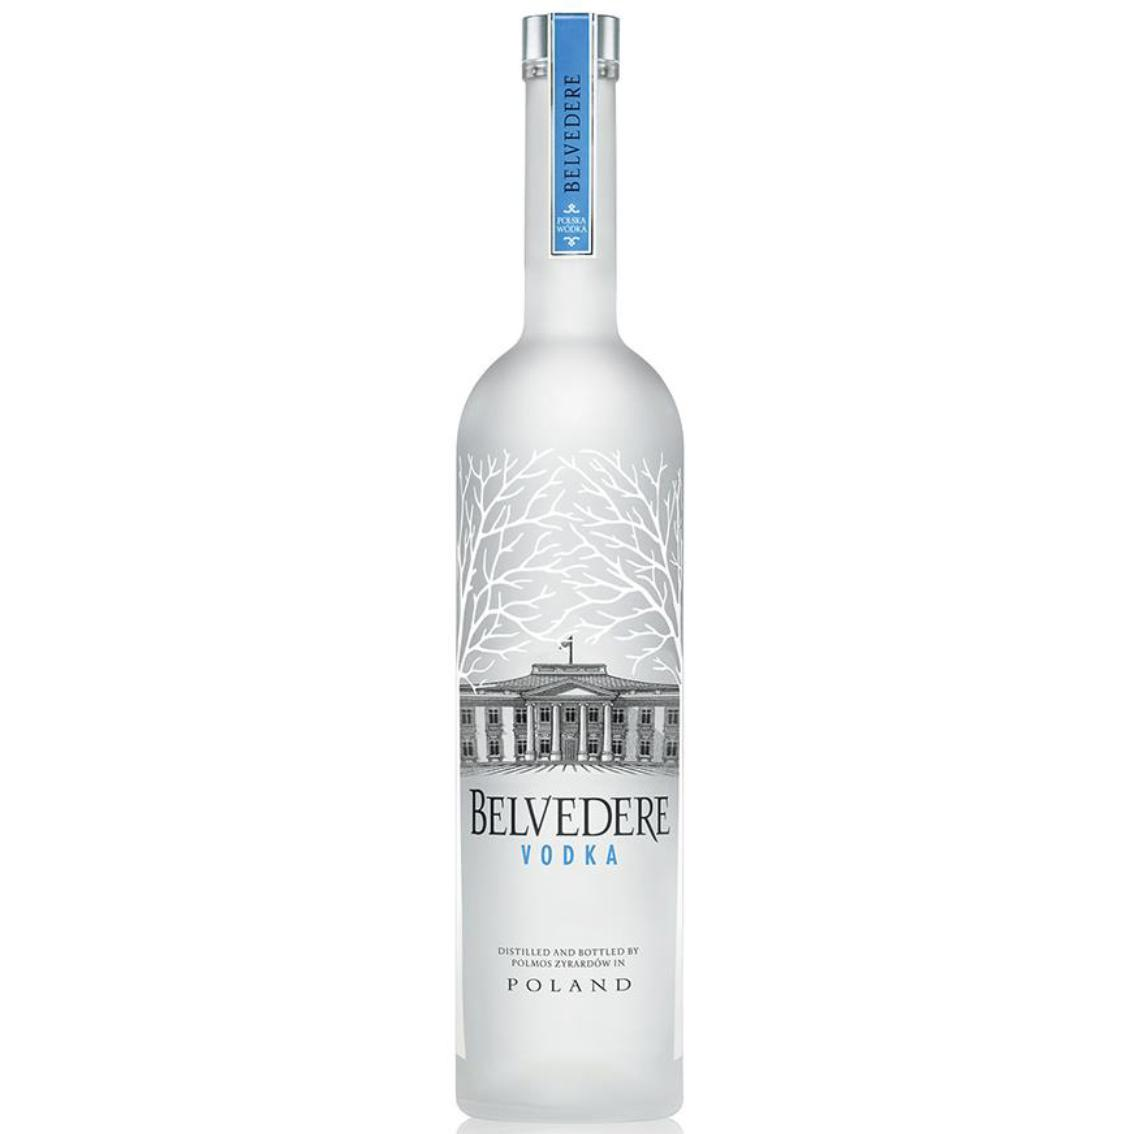 Belvedere Vodka - Poland